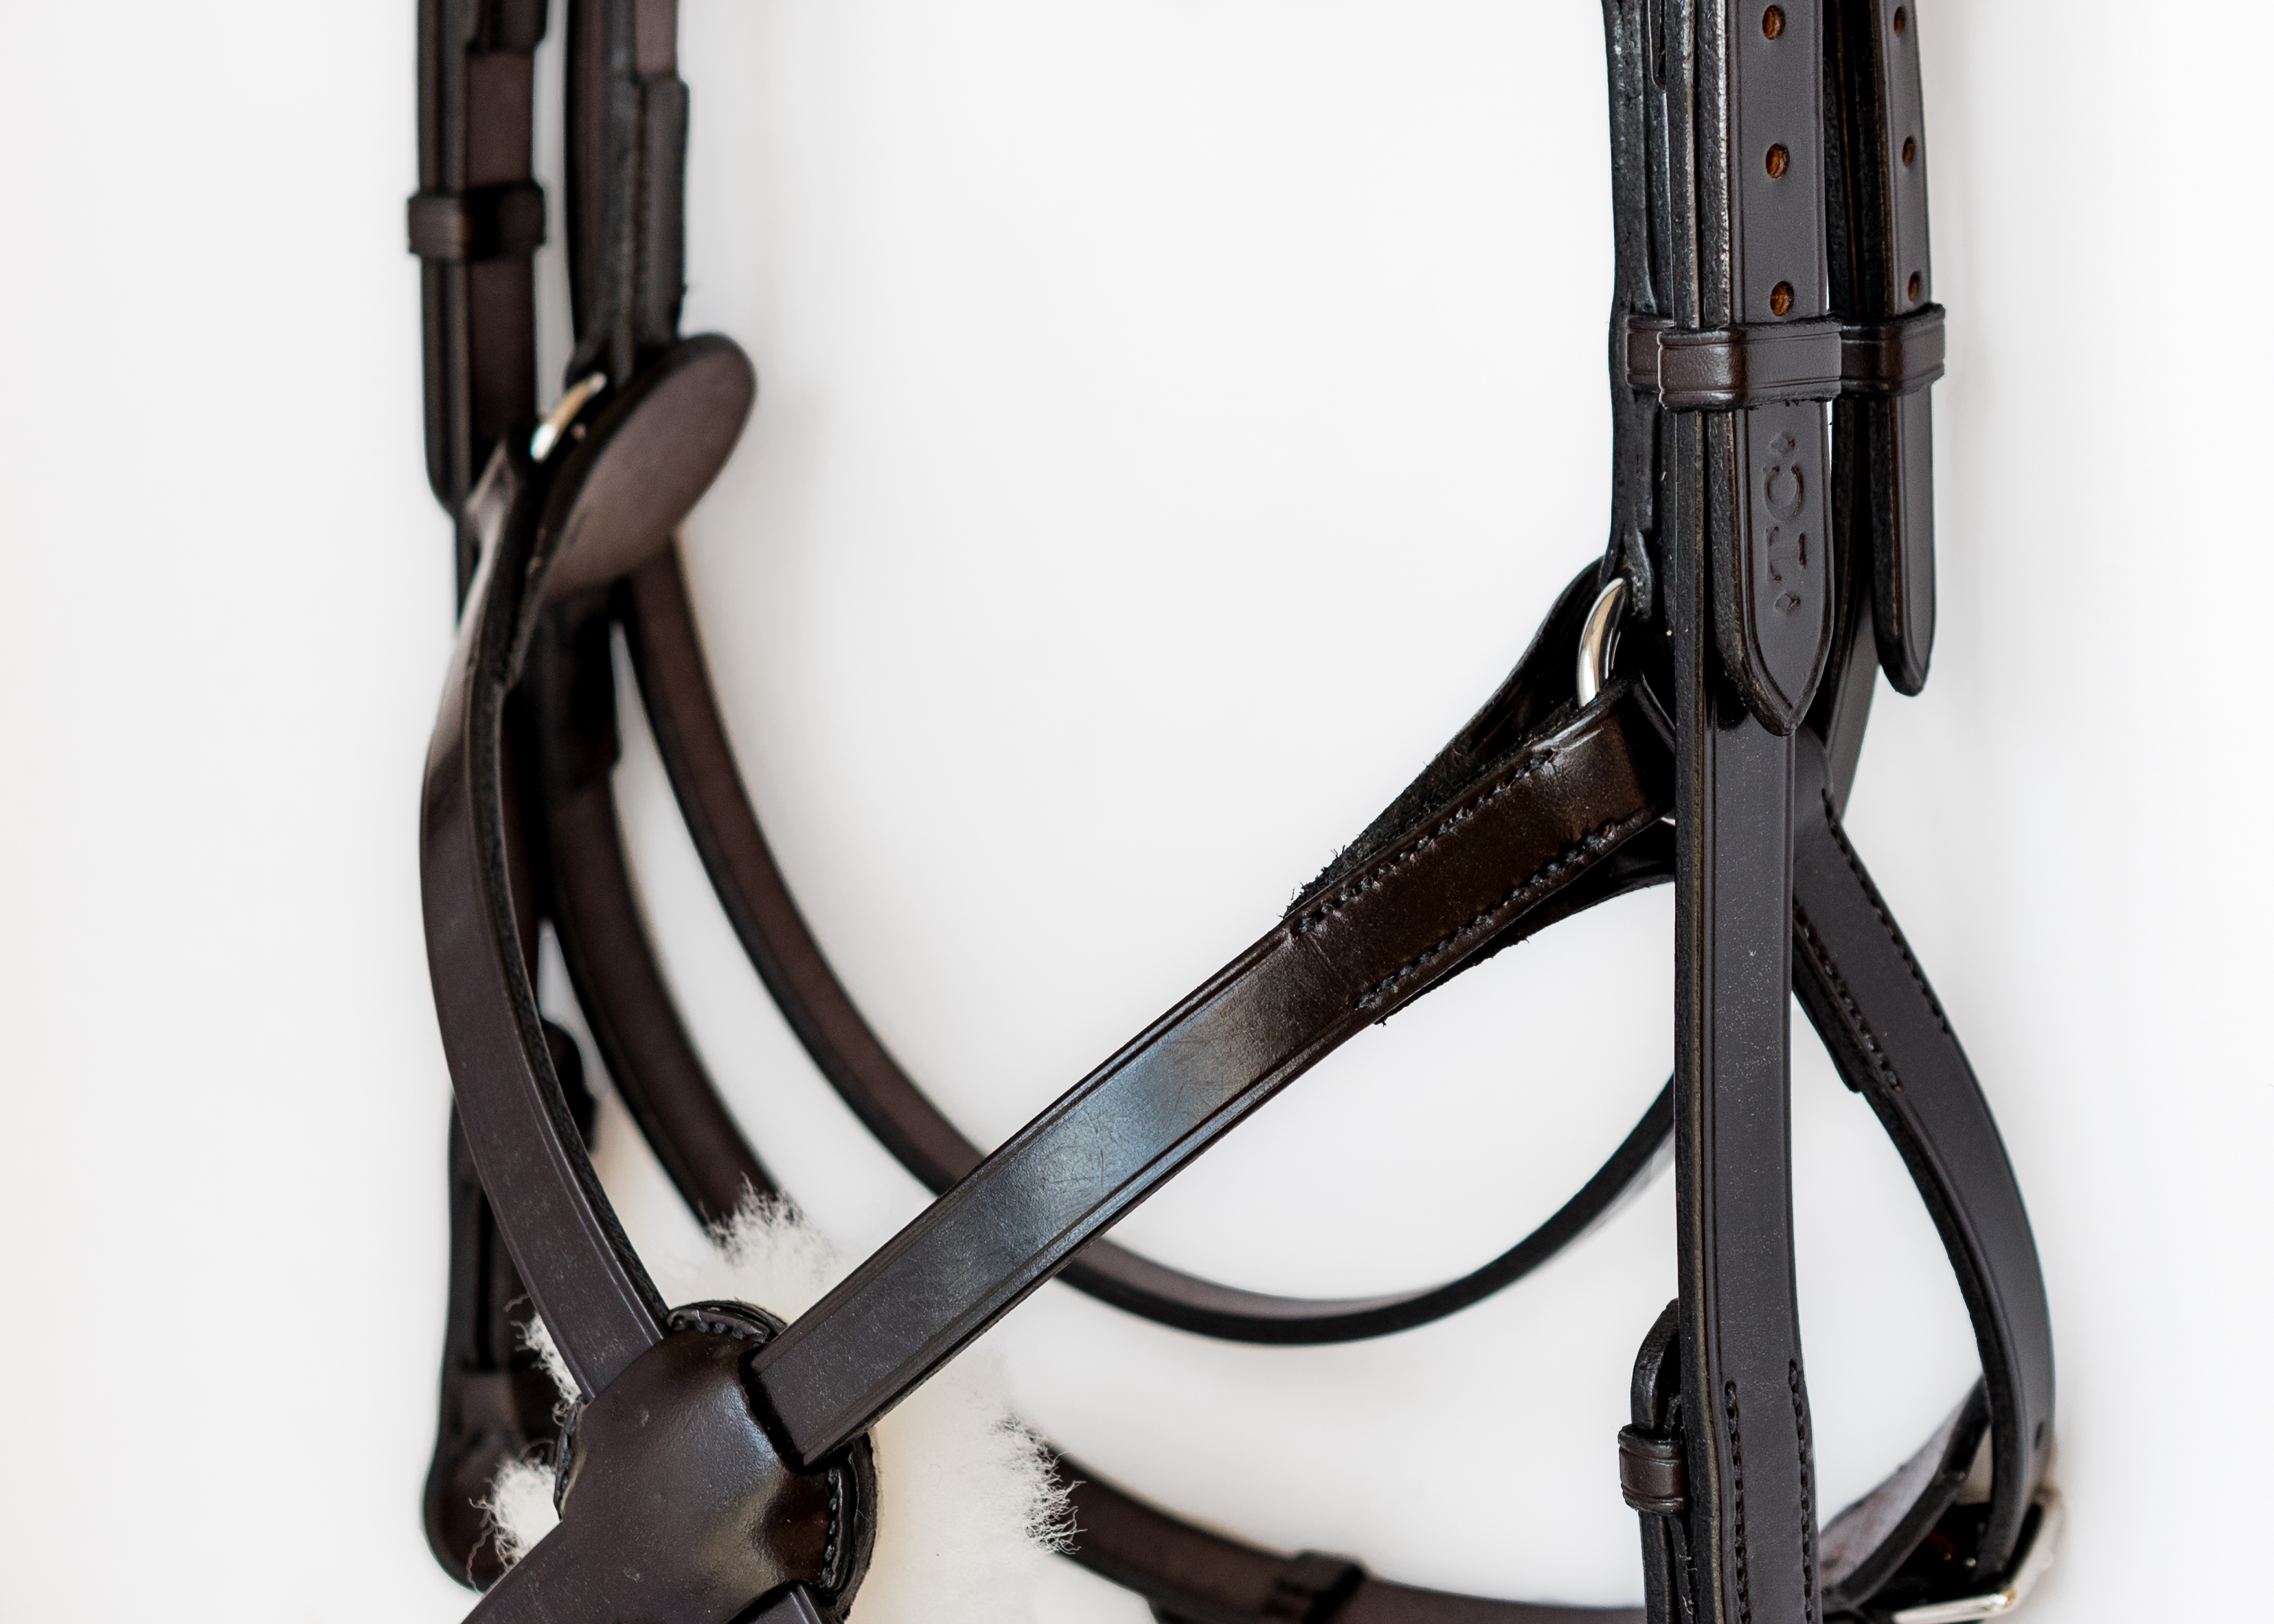 Bespoke hand made bridle with high ring grackle noseband by TC Leatherwork